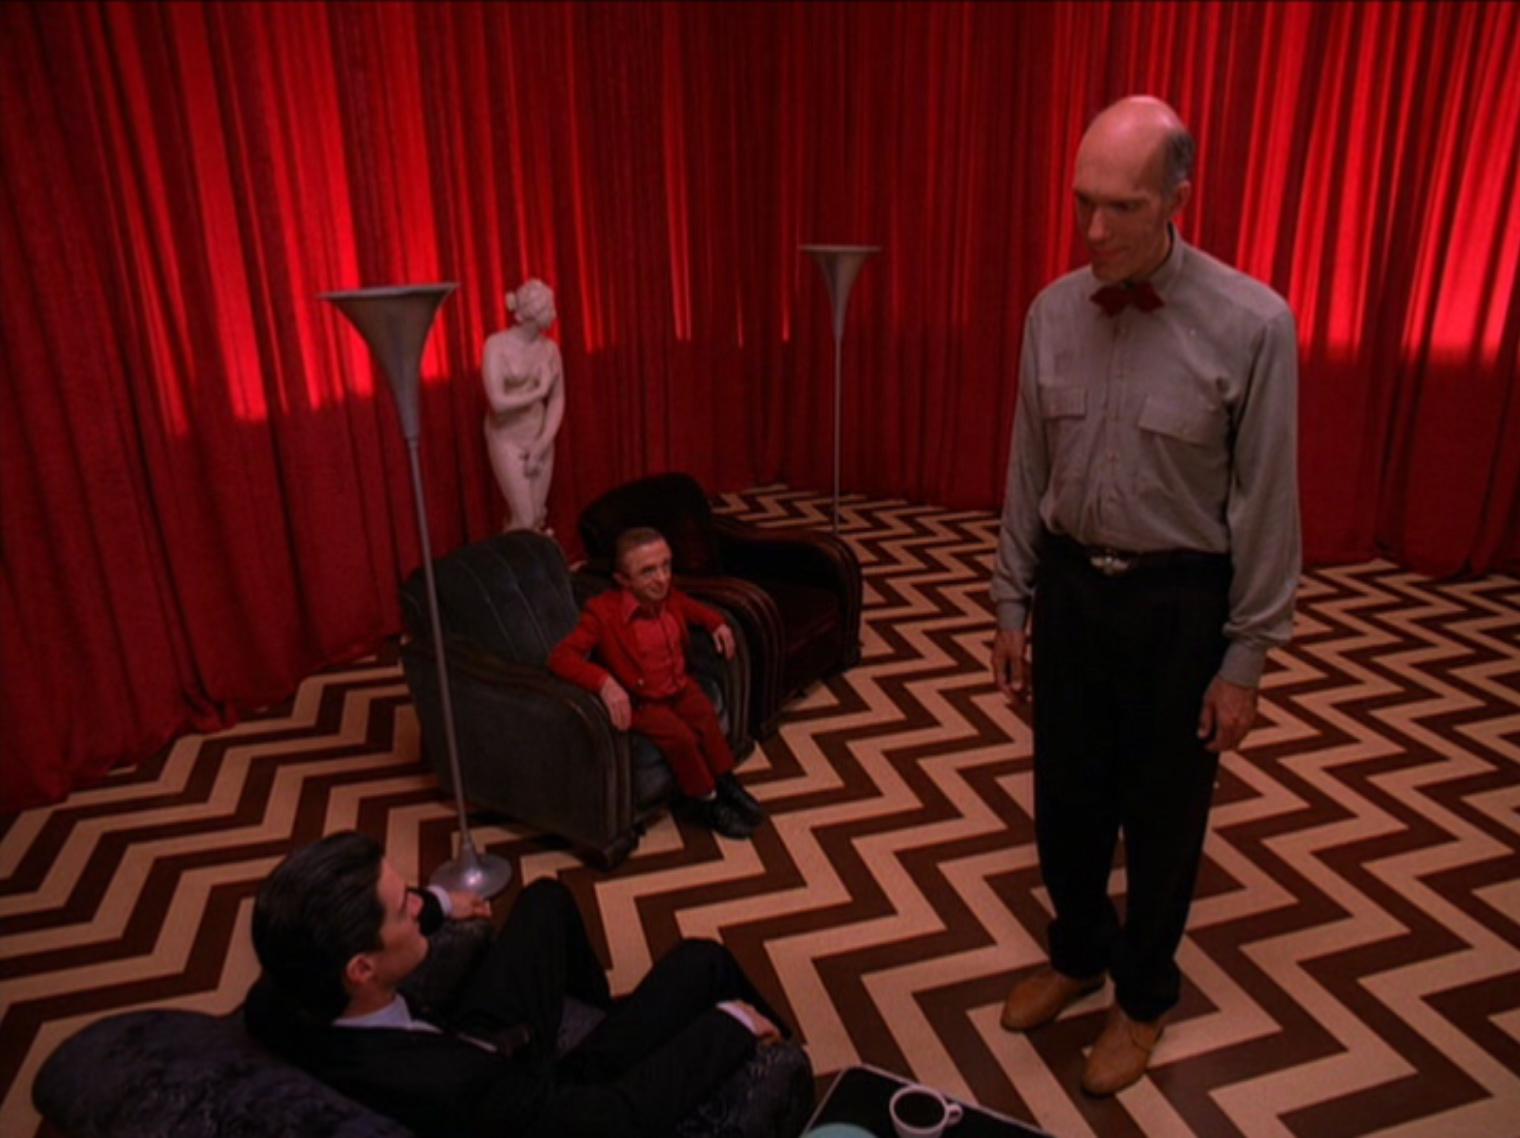 twin-peaks-episc3b3dio-final-2